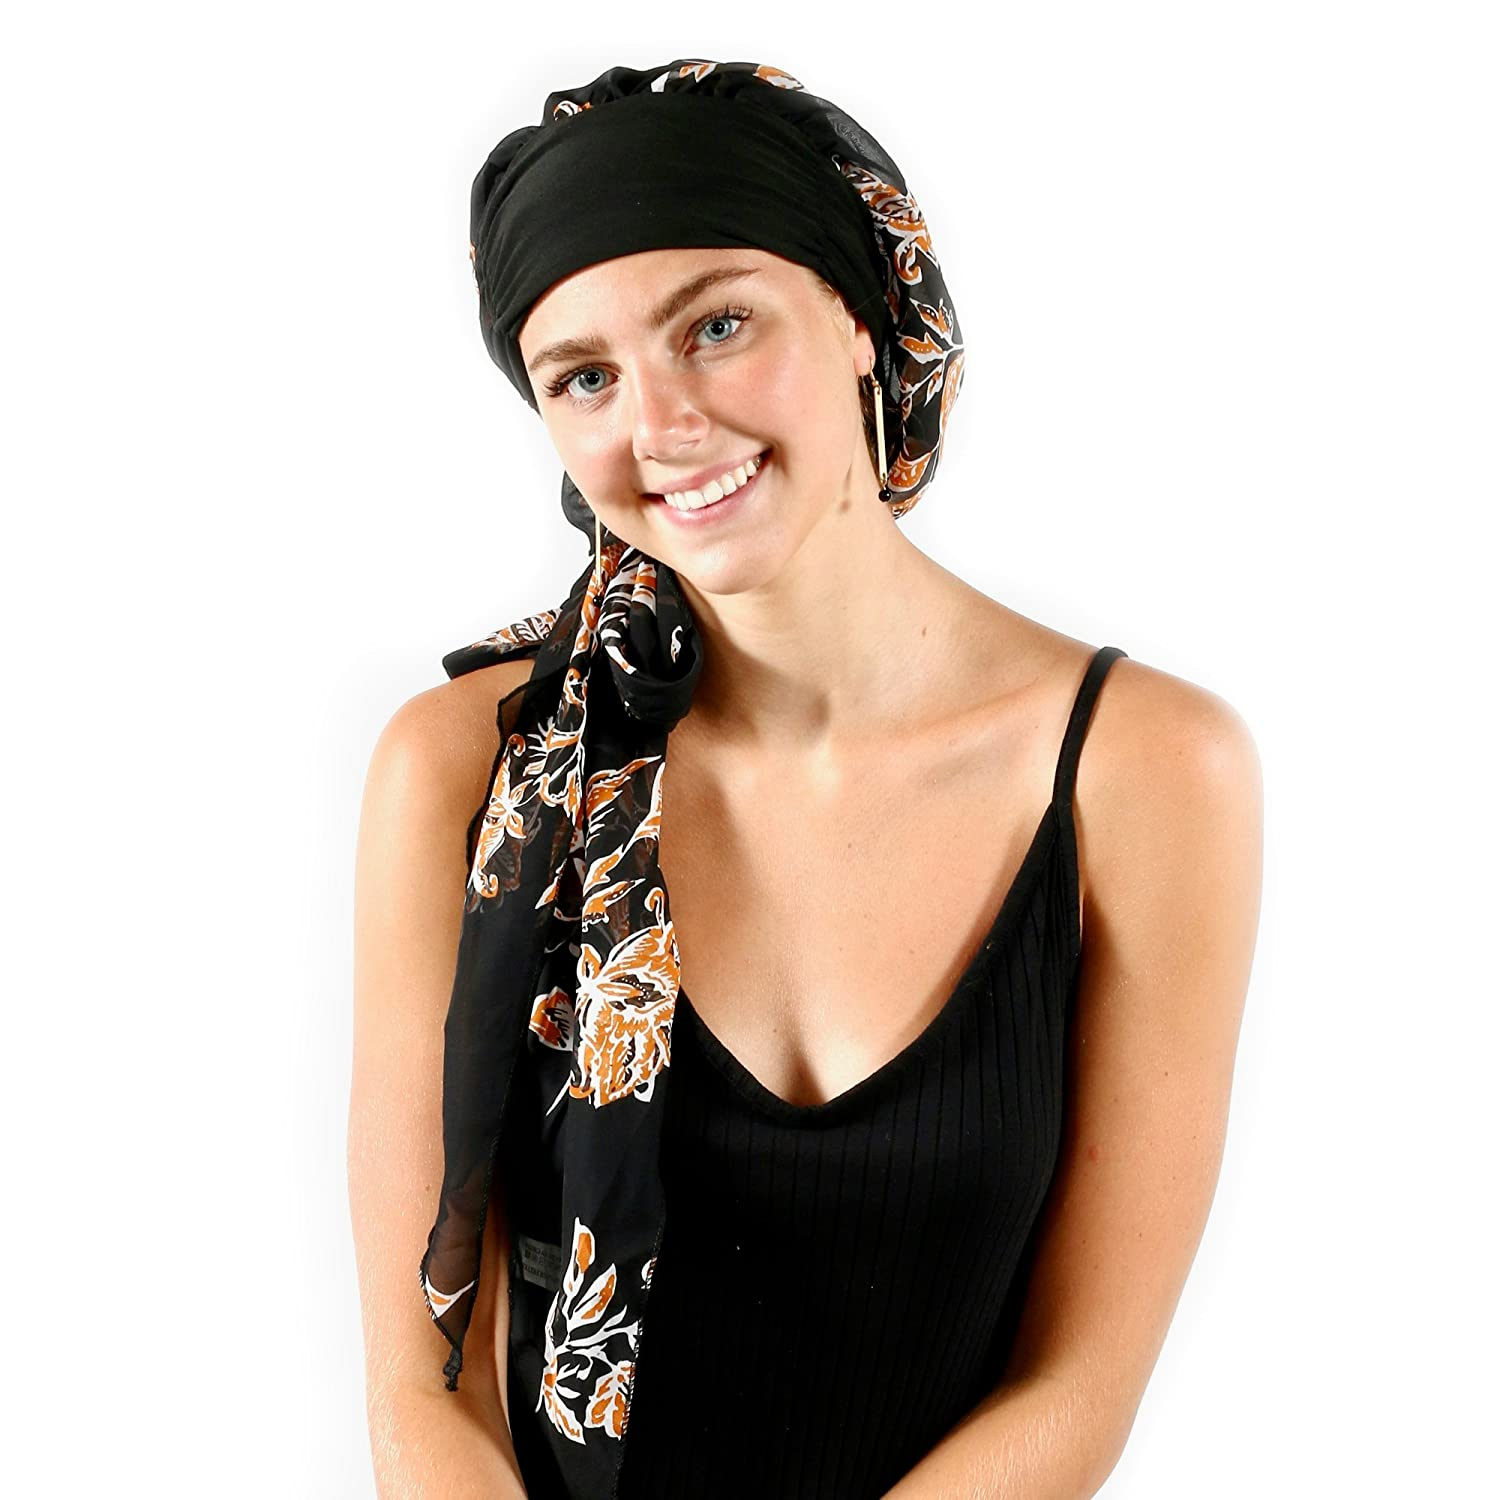 Amazon.com  Pretty Simple Headwear Turbans for Women After Chemo Long Hair  Head Scarf Headwraps Cancer Hats for Alopecia fe94b8d550a